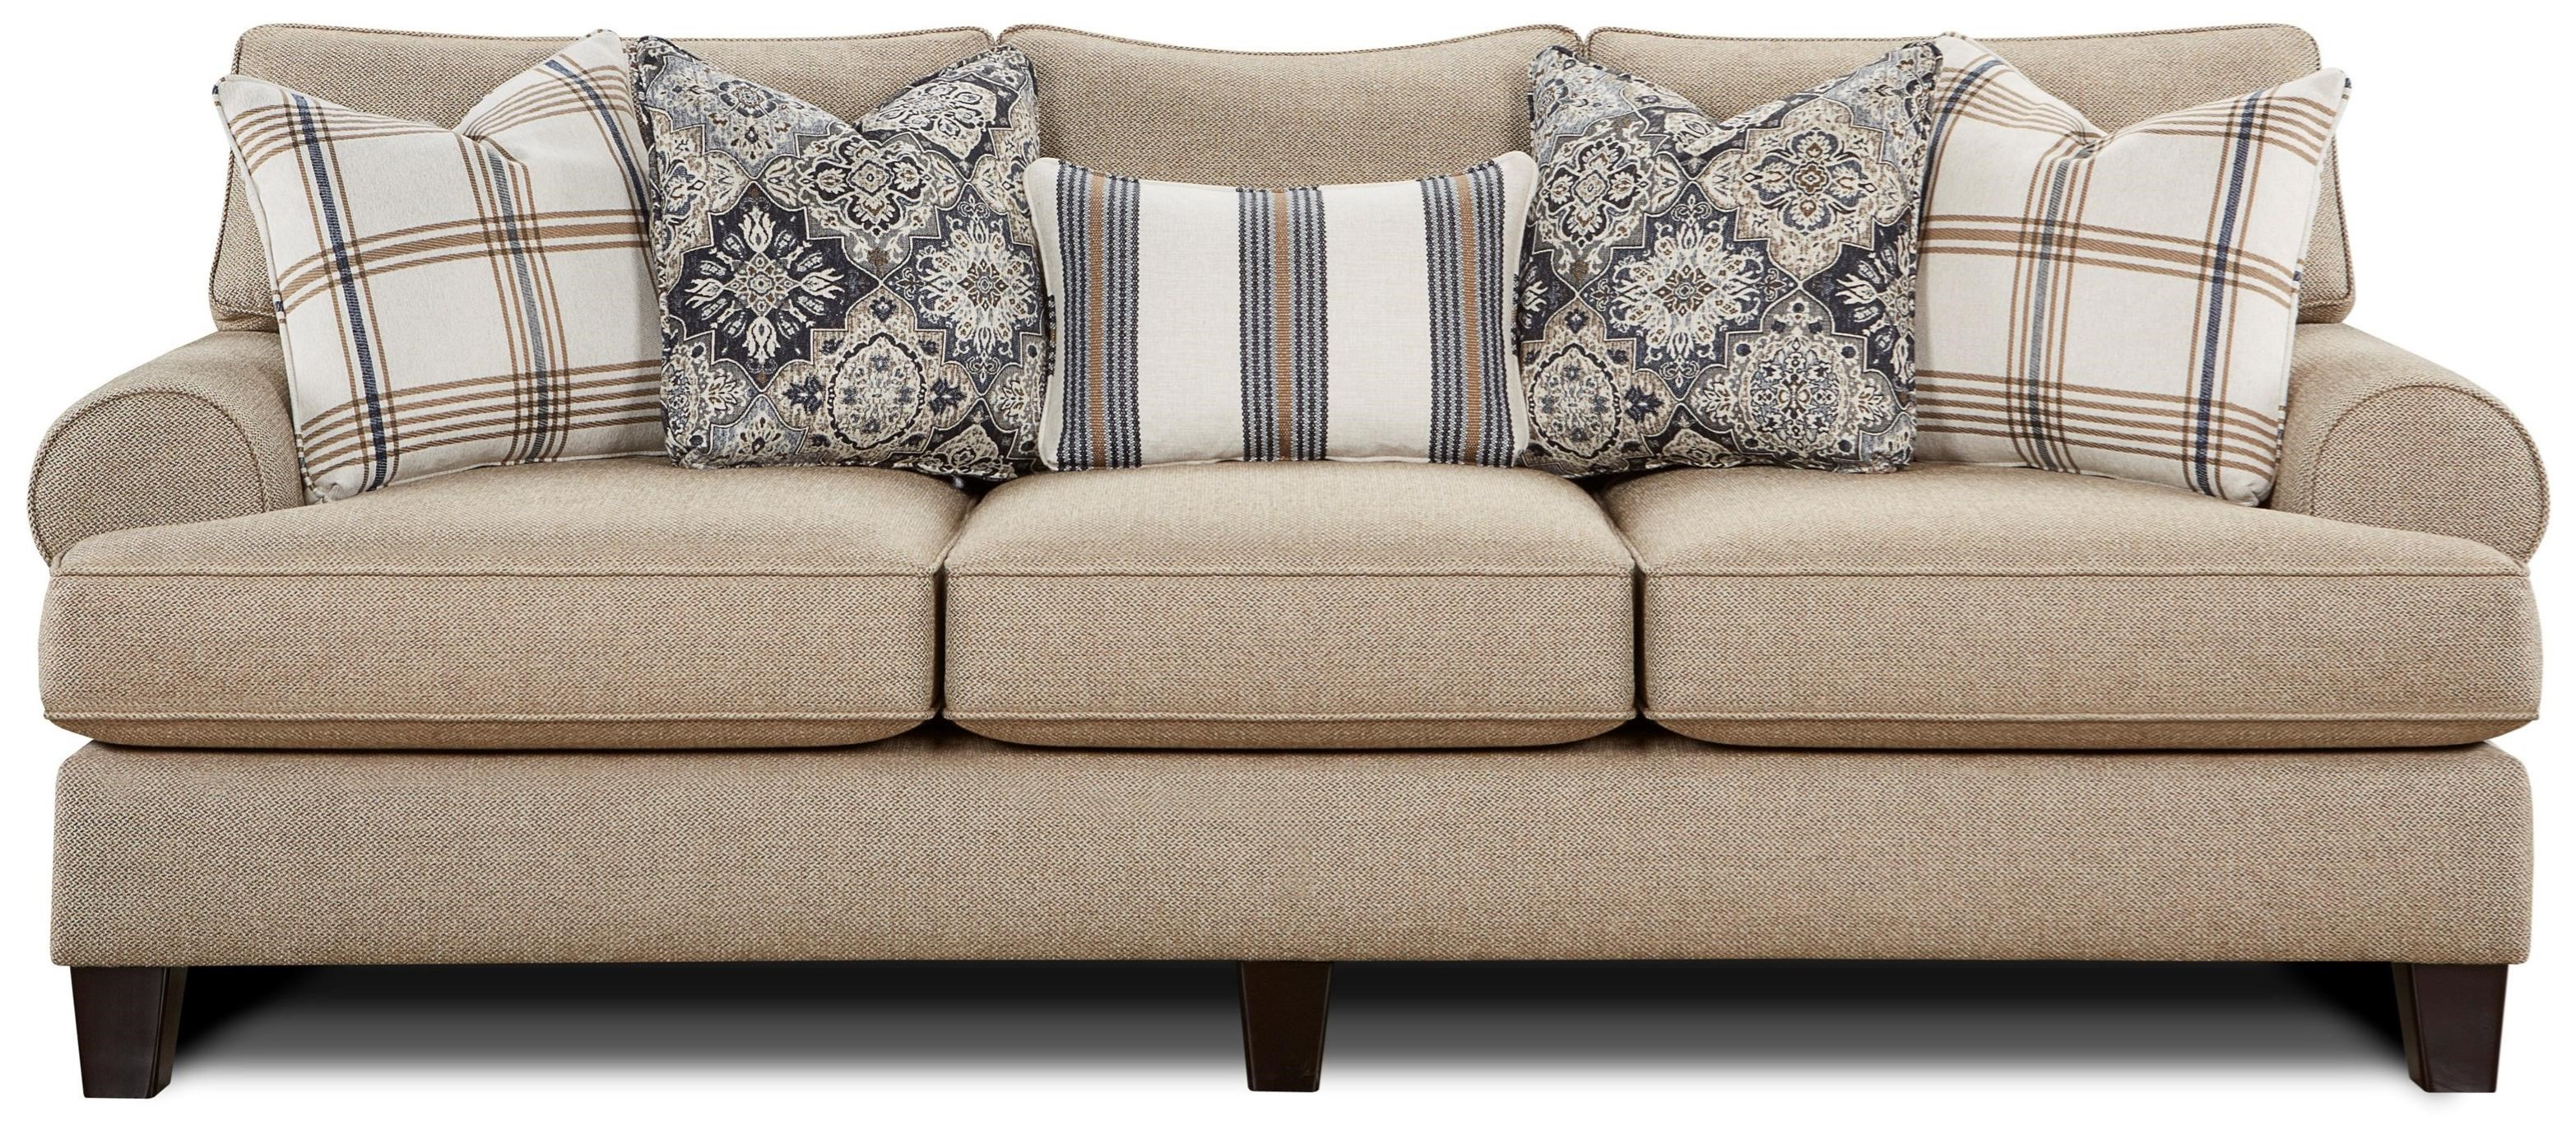 Fusion Furniture 4200 Sofa - Item Number: 4200-KPWhitaker Wheat